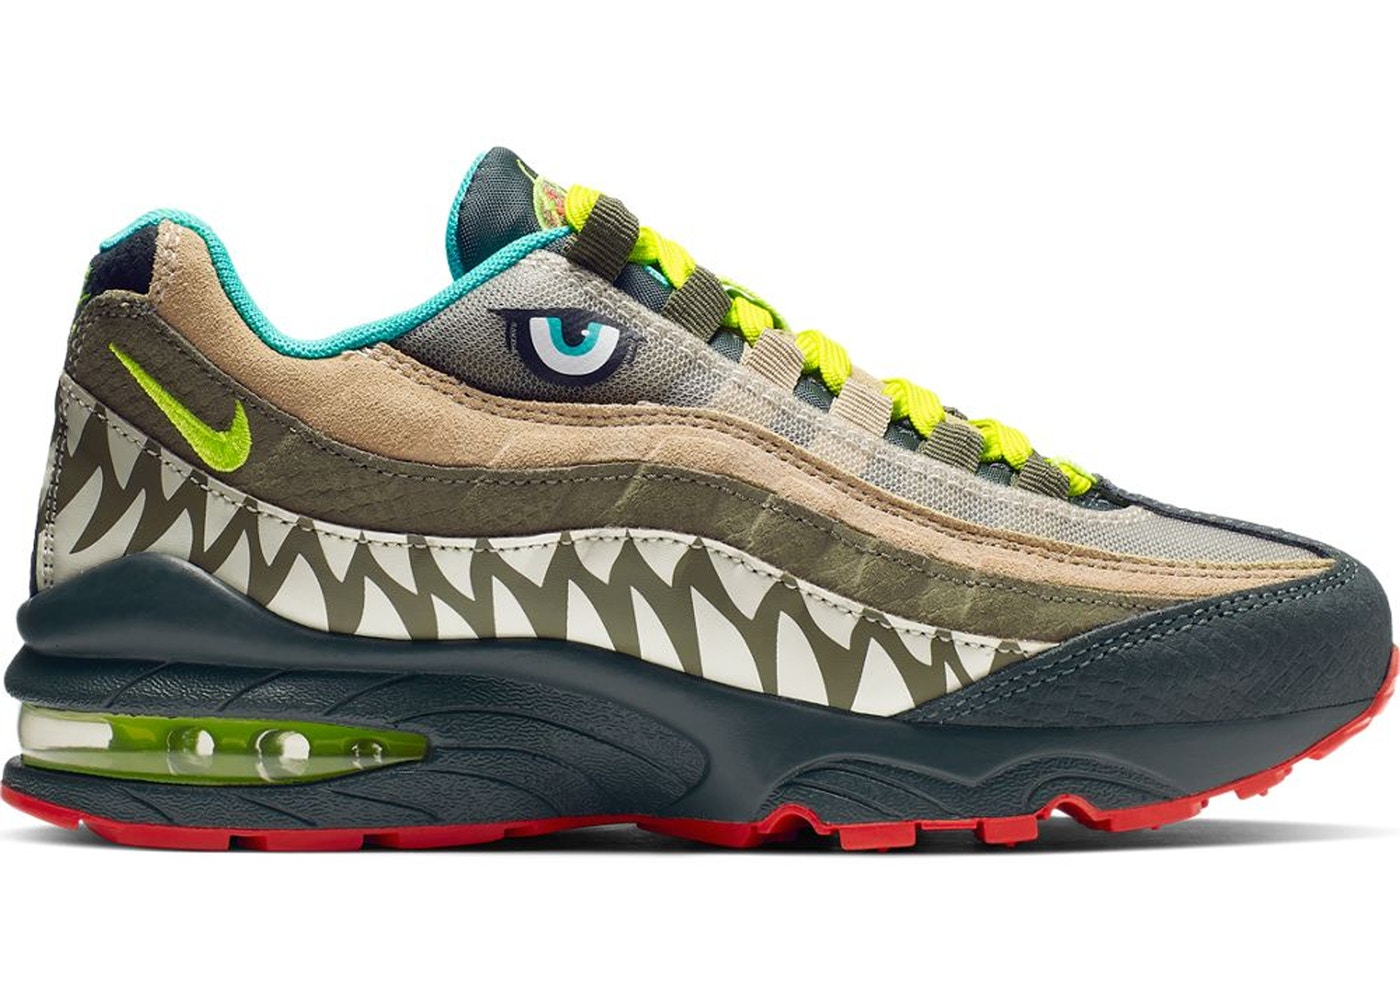 the latest fffe0 7e403 Nike Air Max 95 Shoes - Release Date